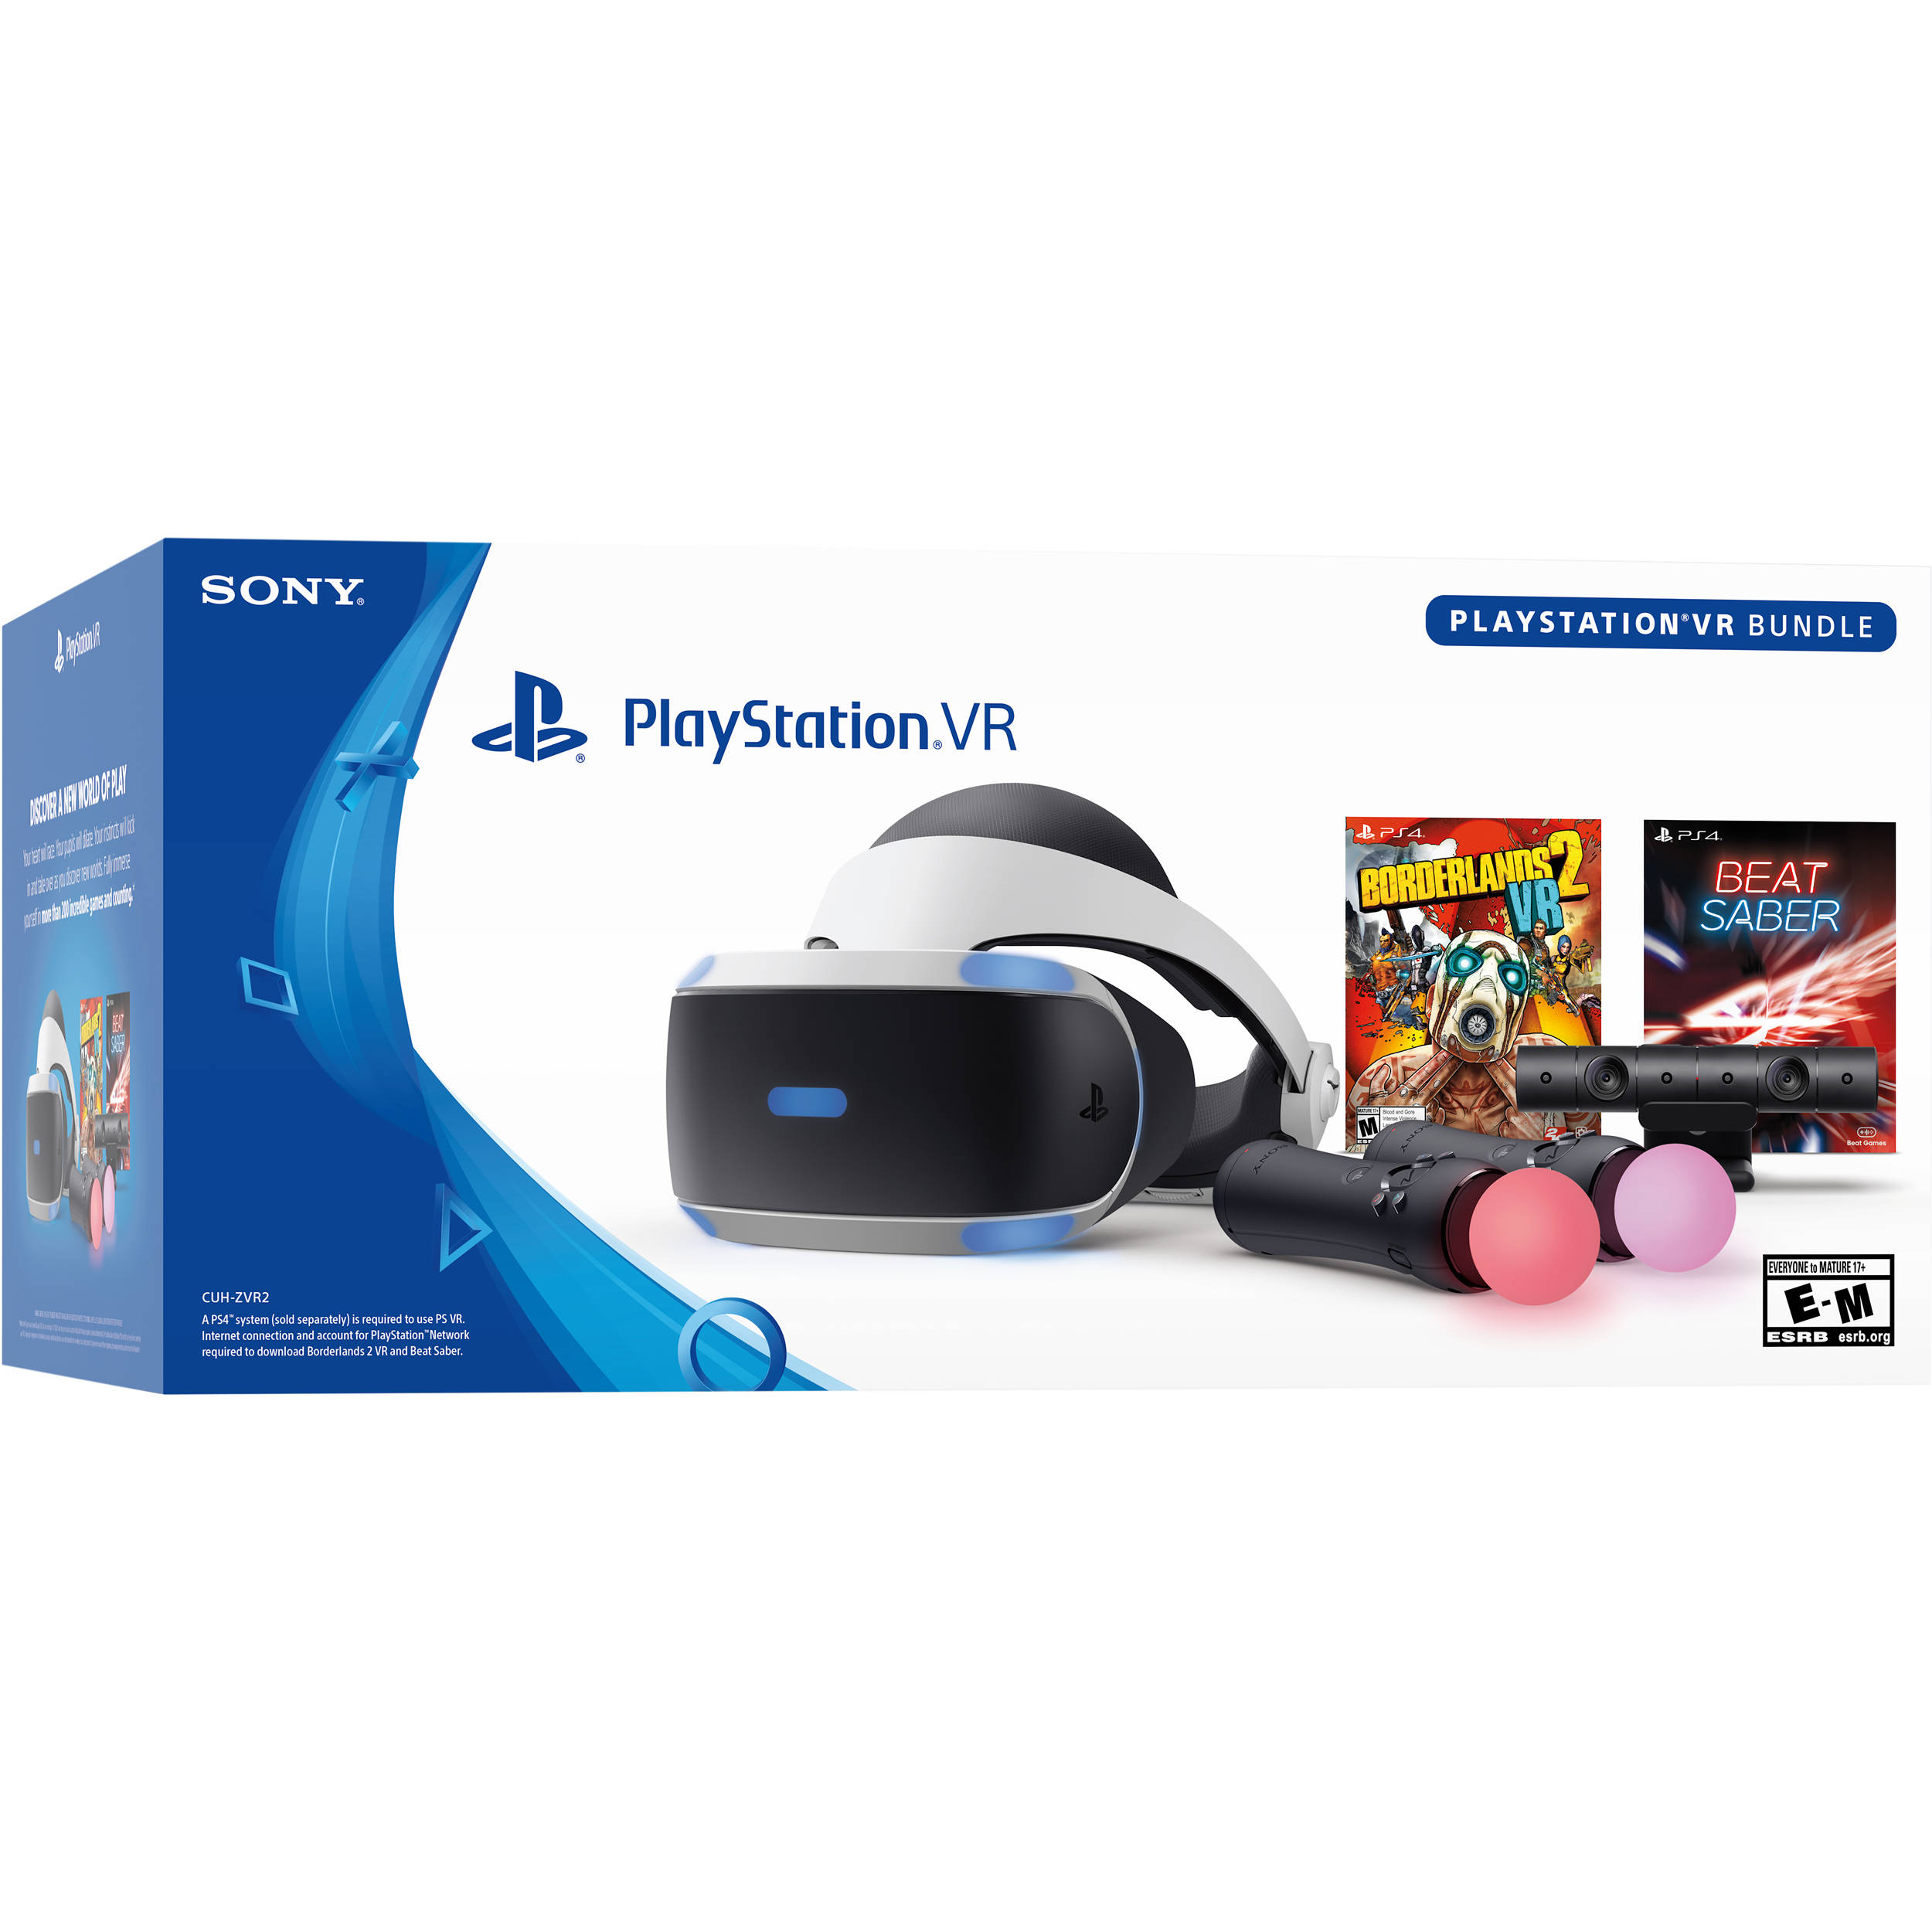 Sony PlayStation VR Borderlands 2 VR and Beat Saber Bundle (PS4)